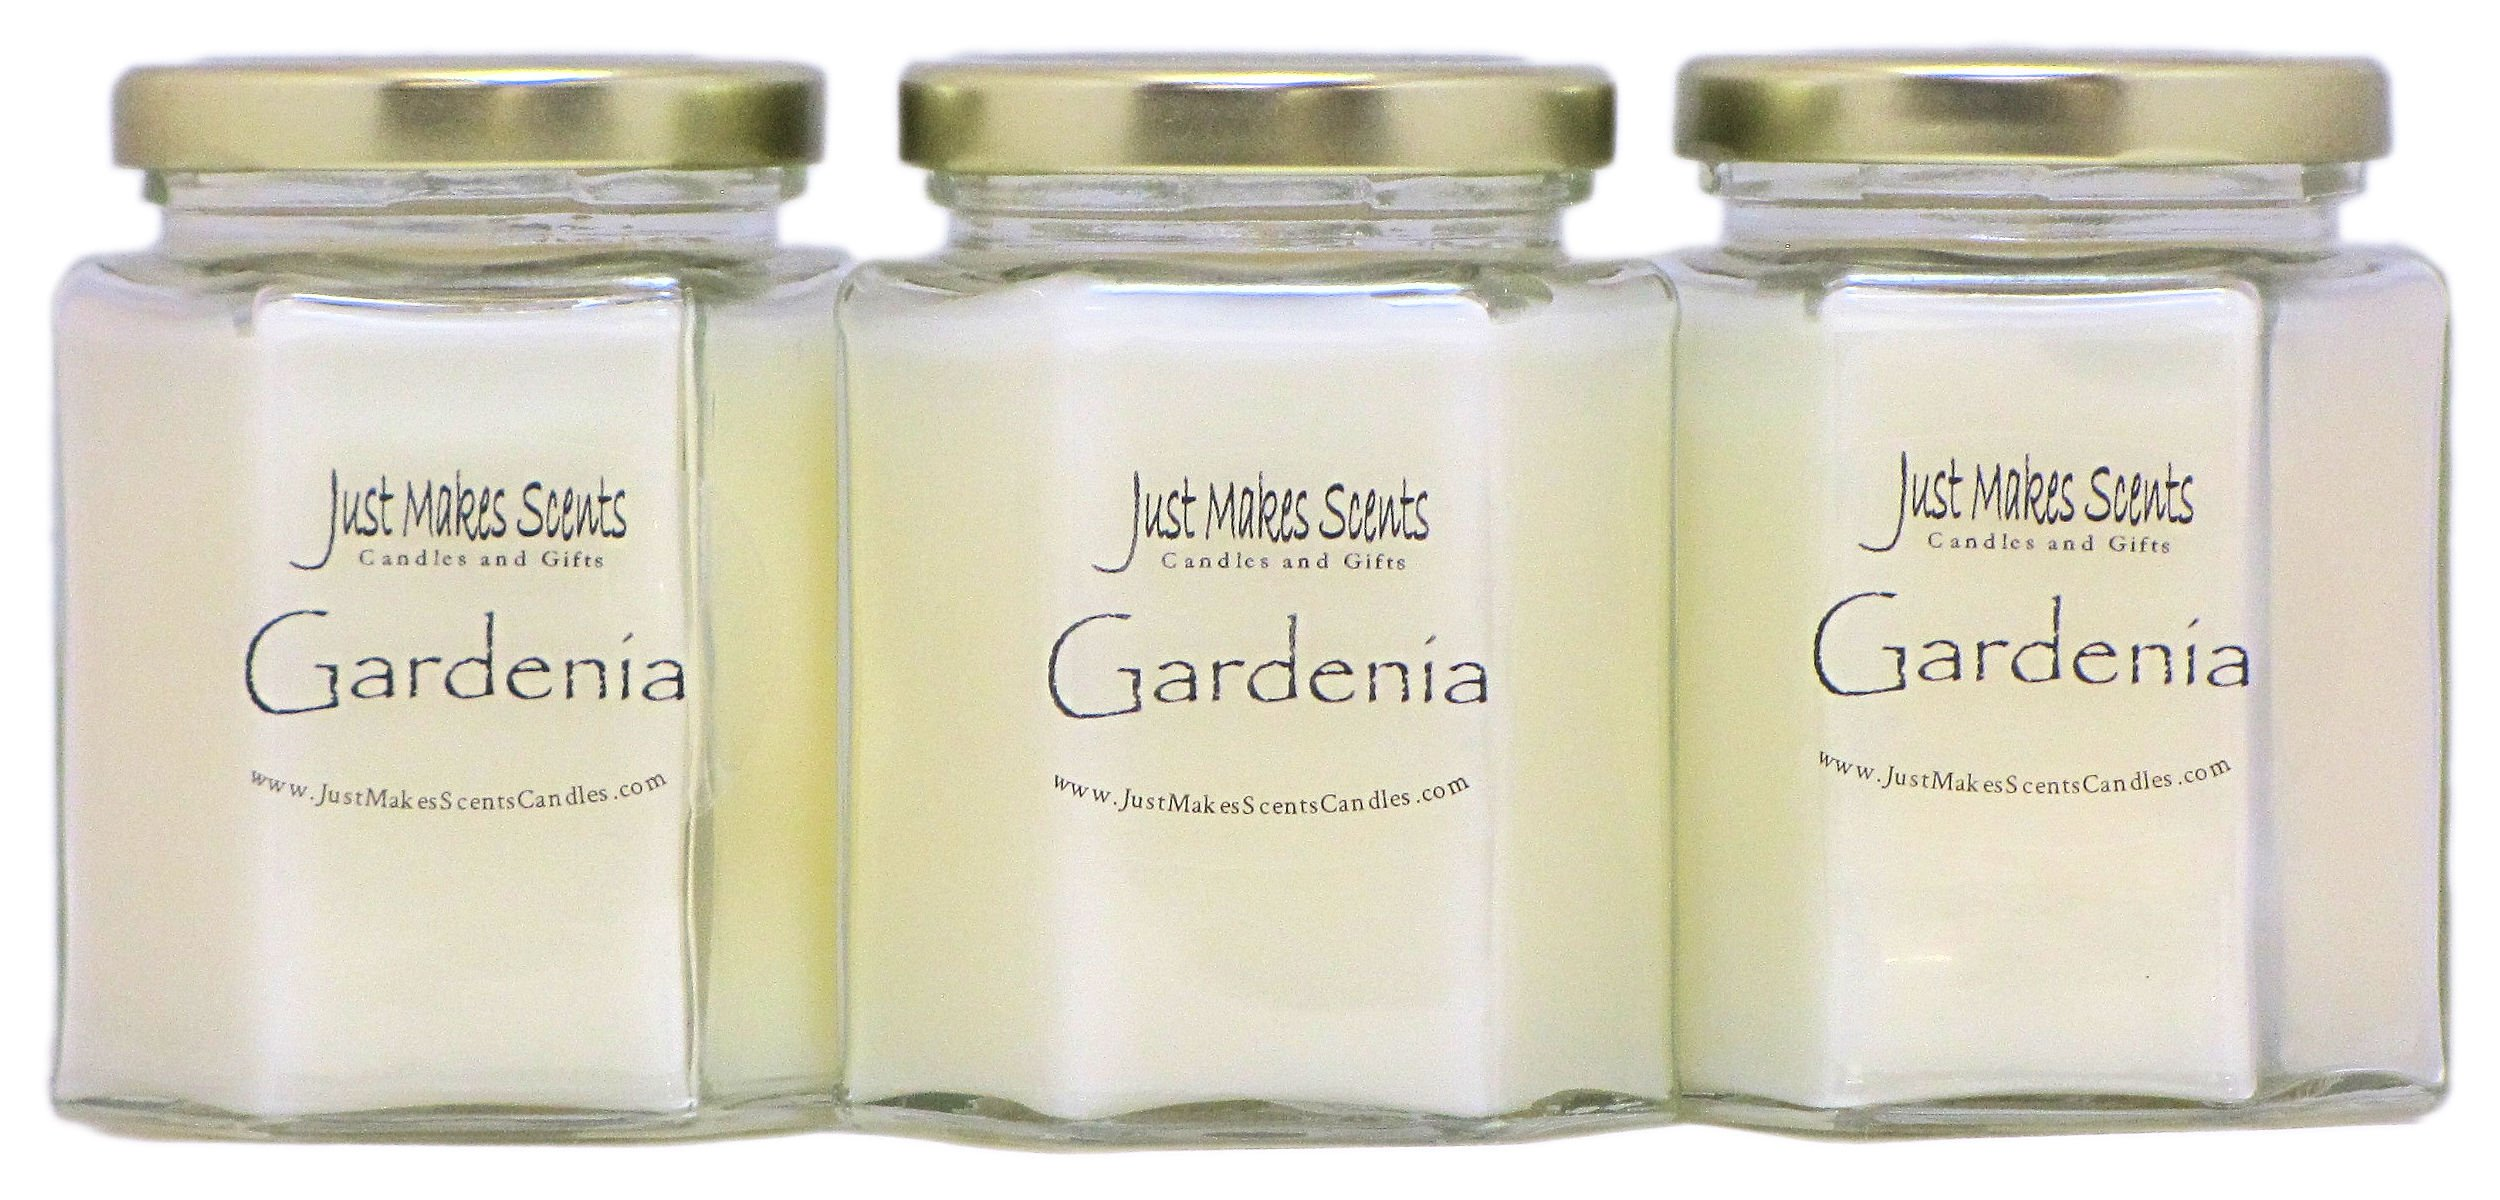 Just Makes Scents 3 Pack - Gardenia Scented Blended Soy Candle | Long Lasting Spring Floral Fragrance | Hand Poured in The USA